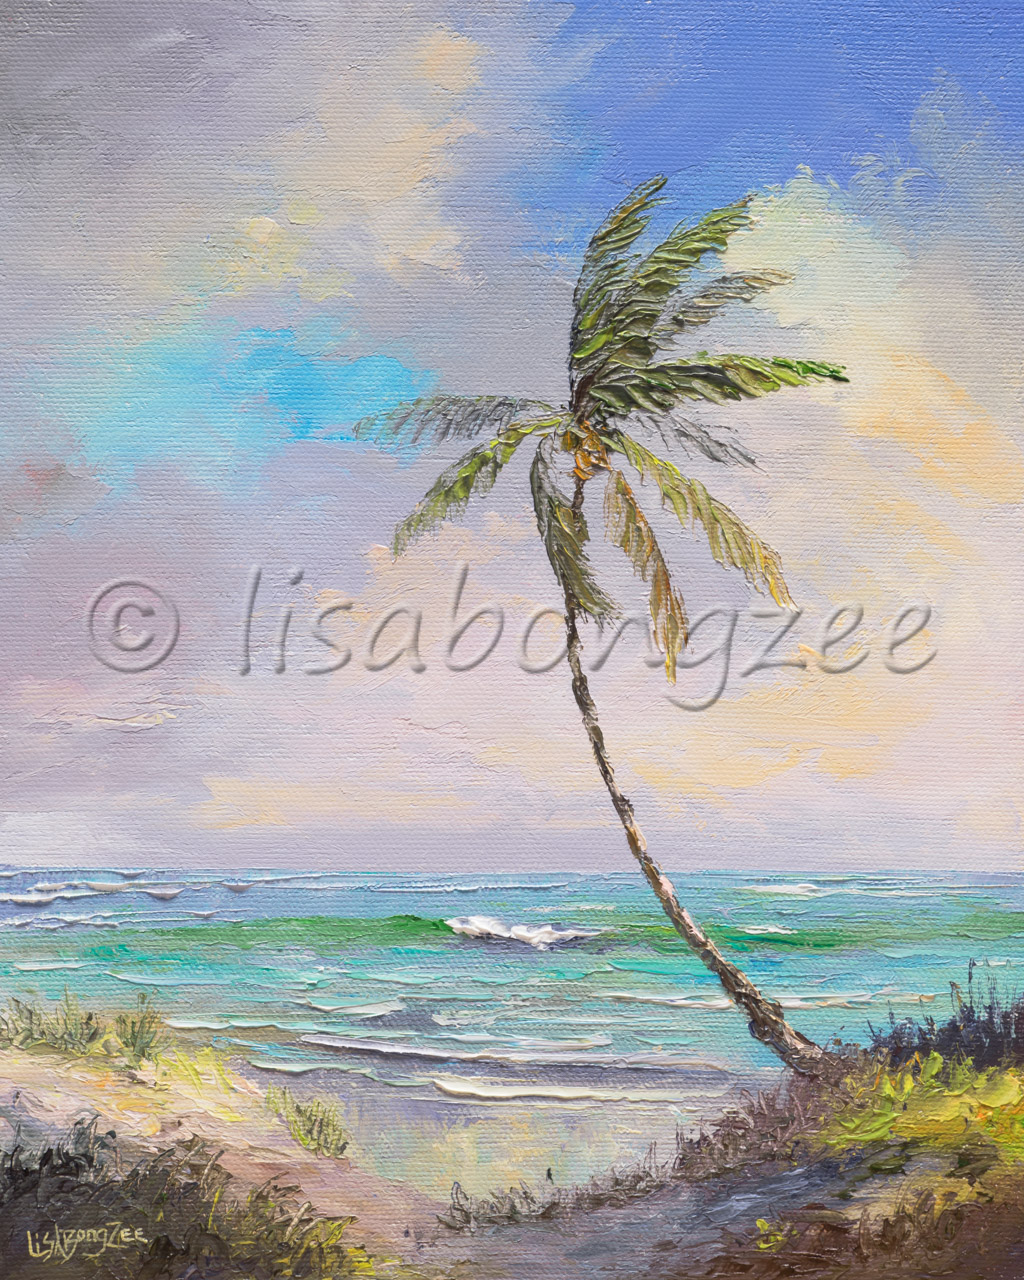 original oil of a single palm tree next to shore with a pastel sky and sea foam ocean with a wave in the distance